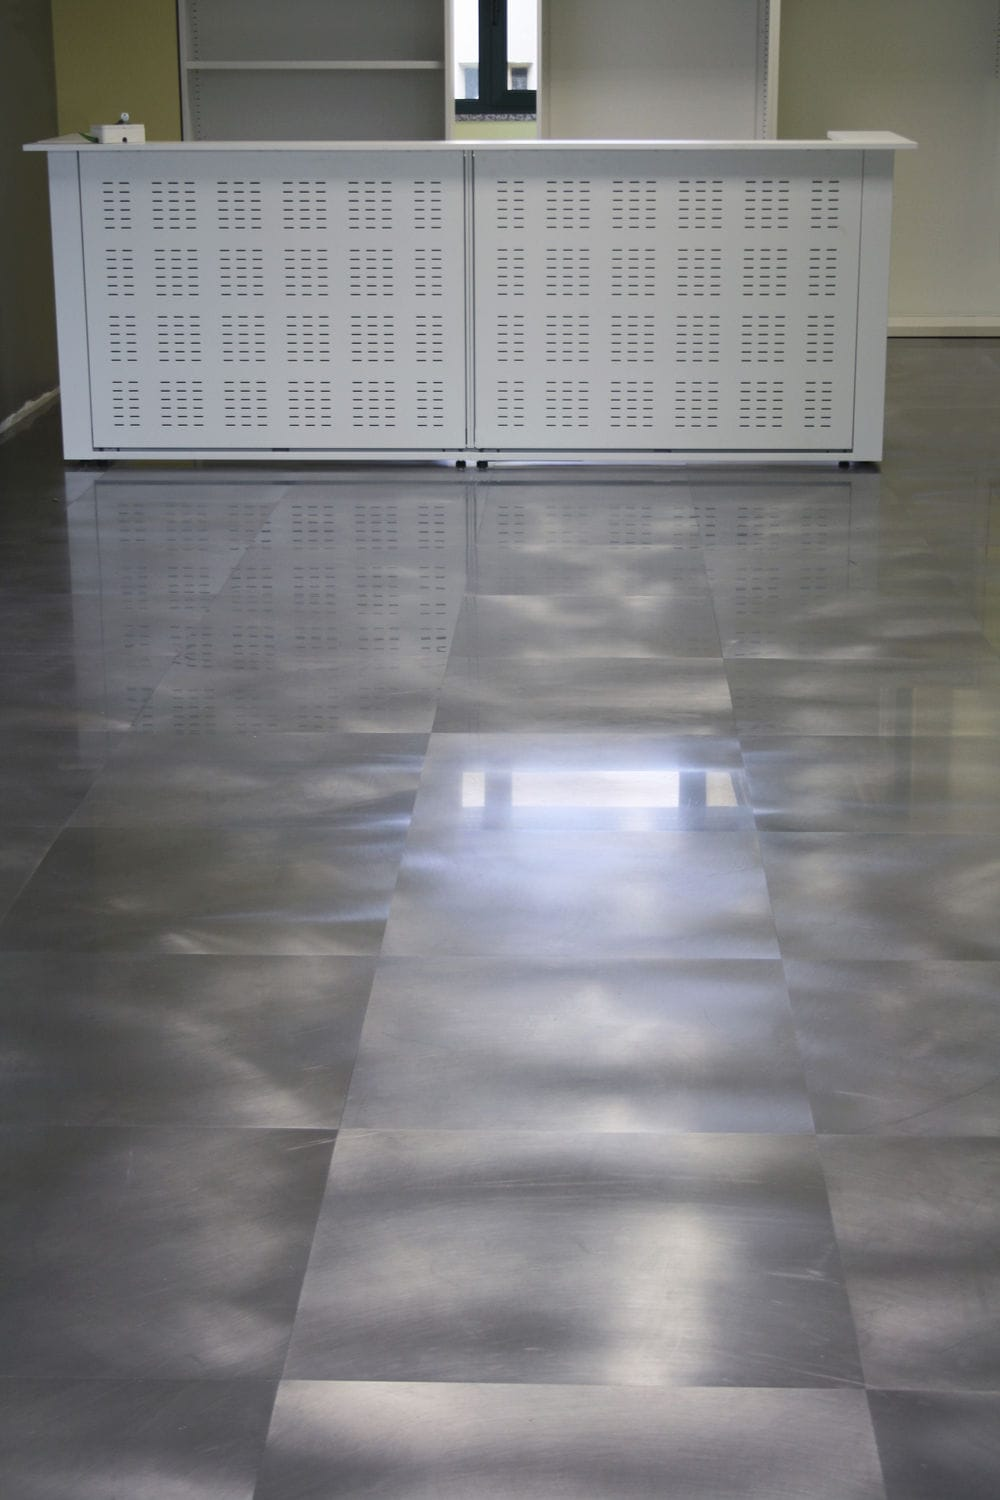 Indoor tile / floor / metal / plain - PL01 Invisible Floor - Planium